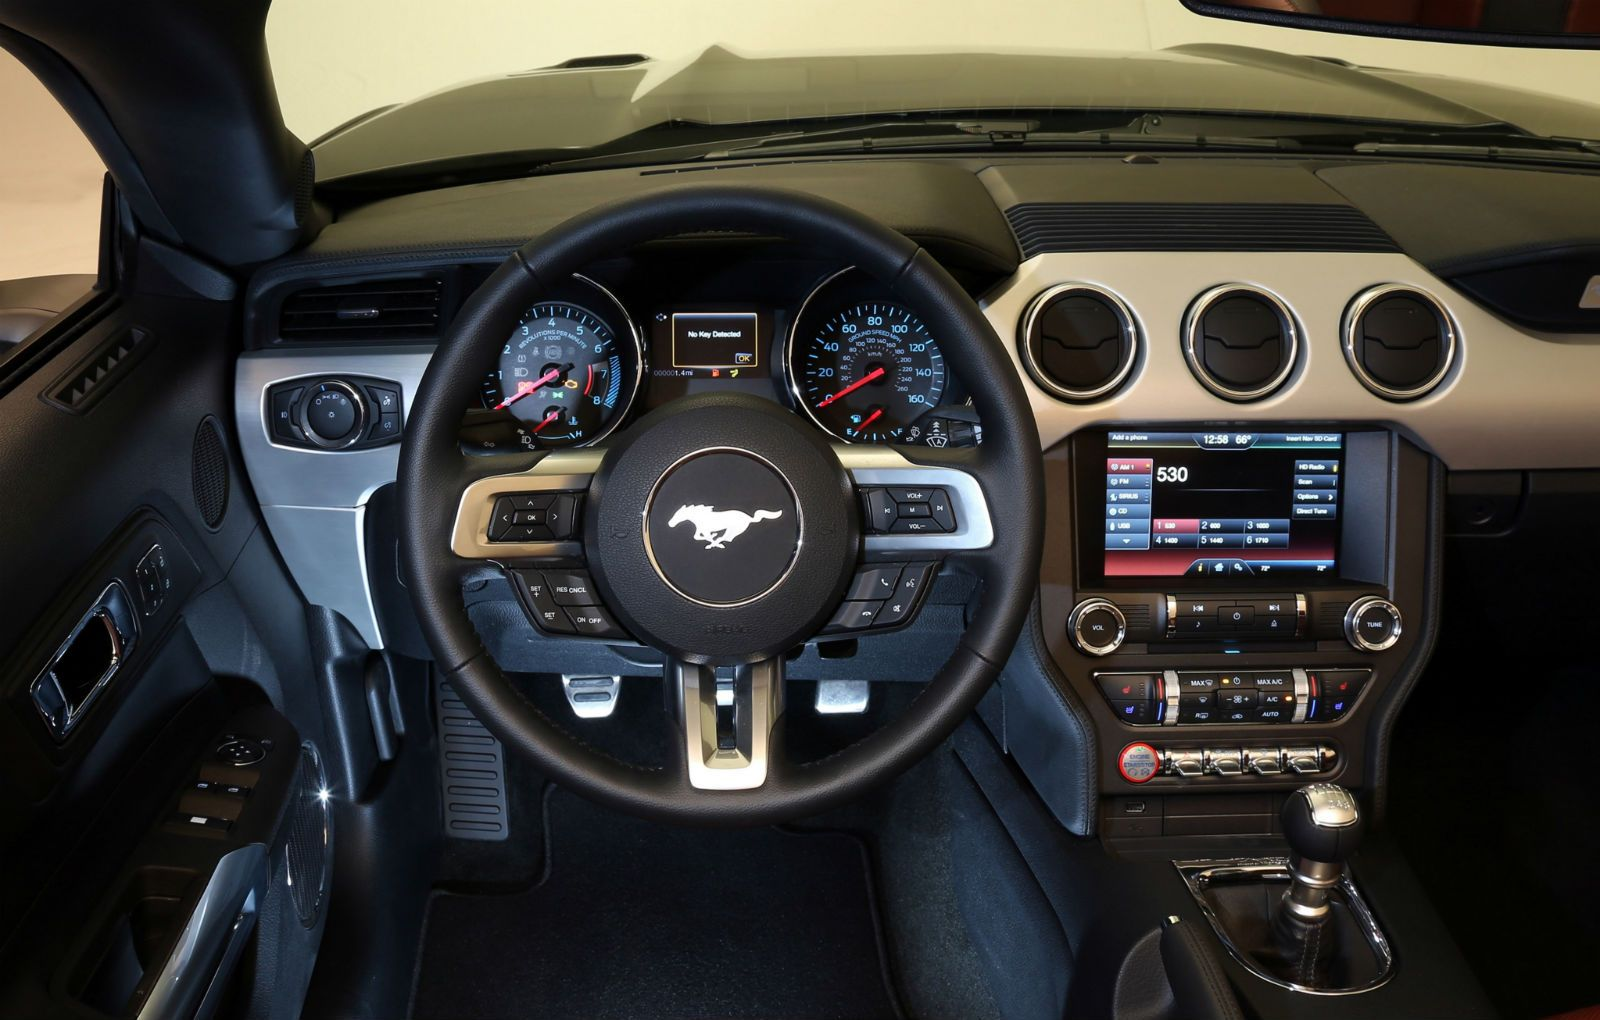 Charming Ford Mustang 2015 Interior Cobra Ijawvq (1600×1020) Awesome Design